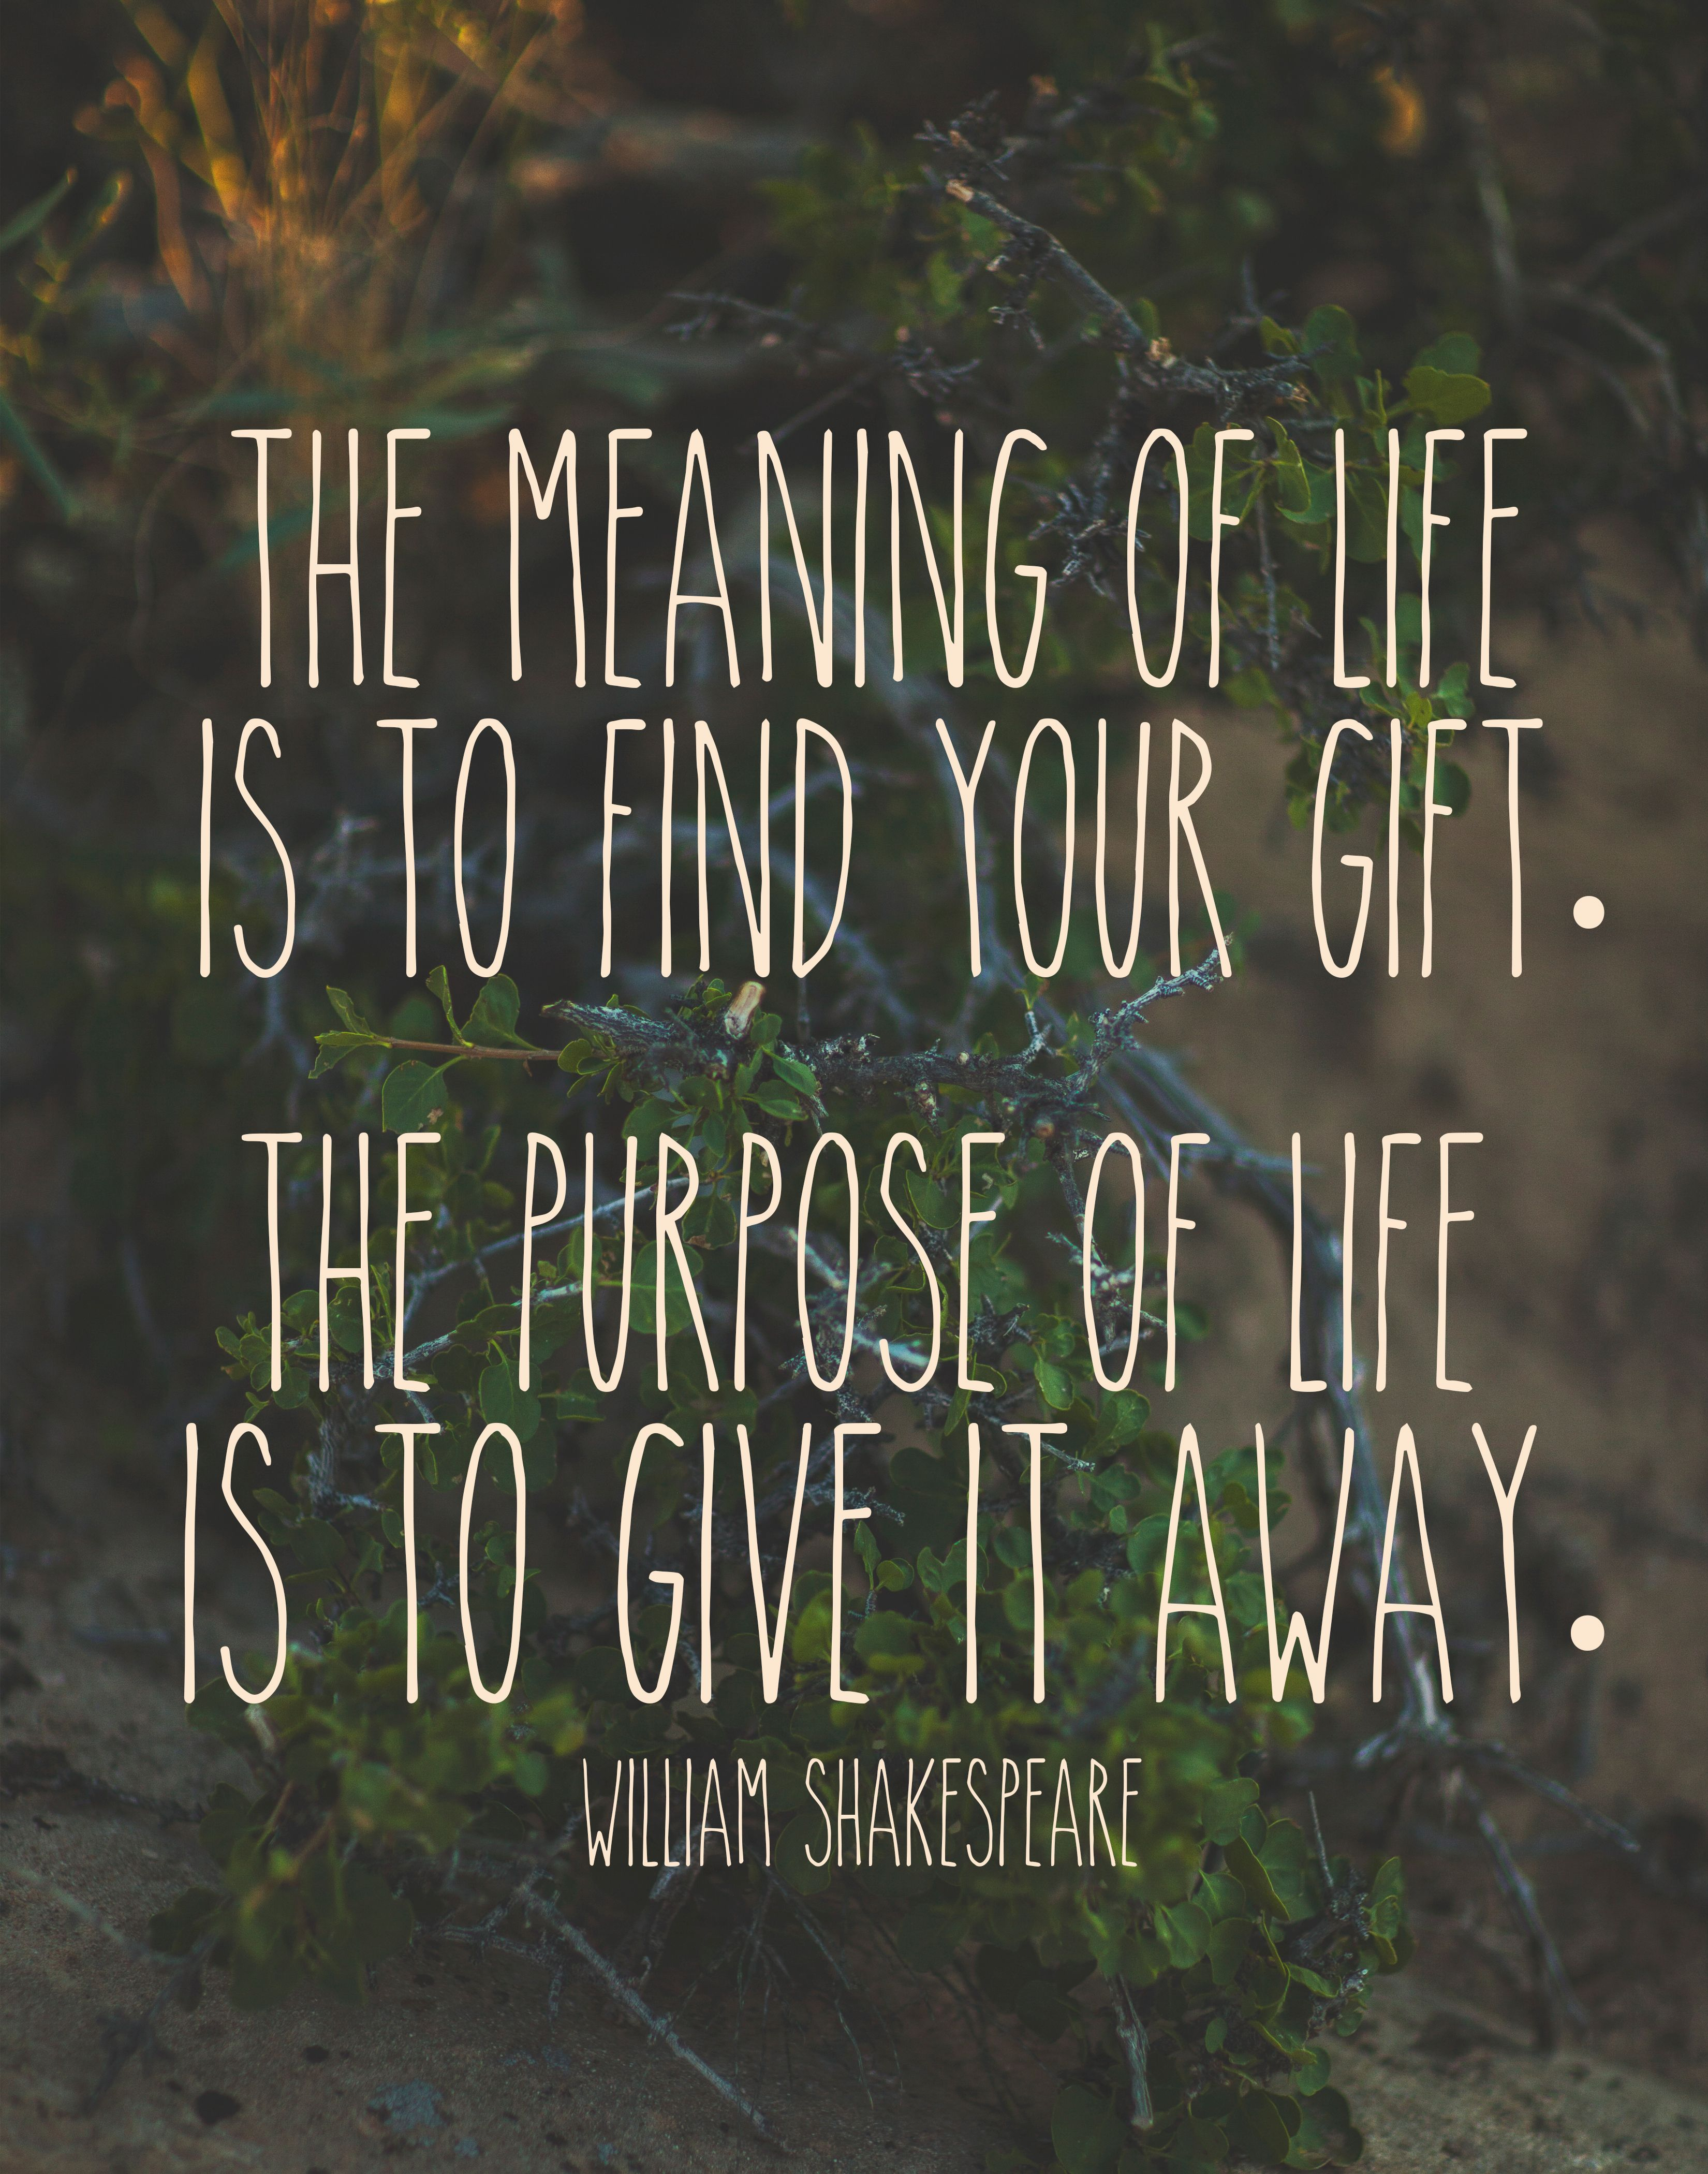 'The meaning of life is to find your gift. The purpose of